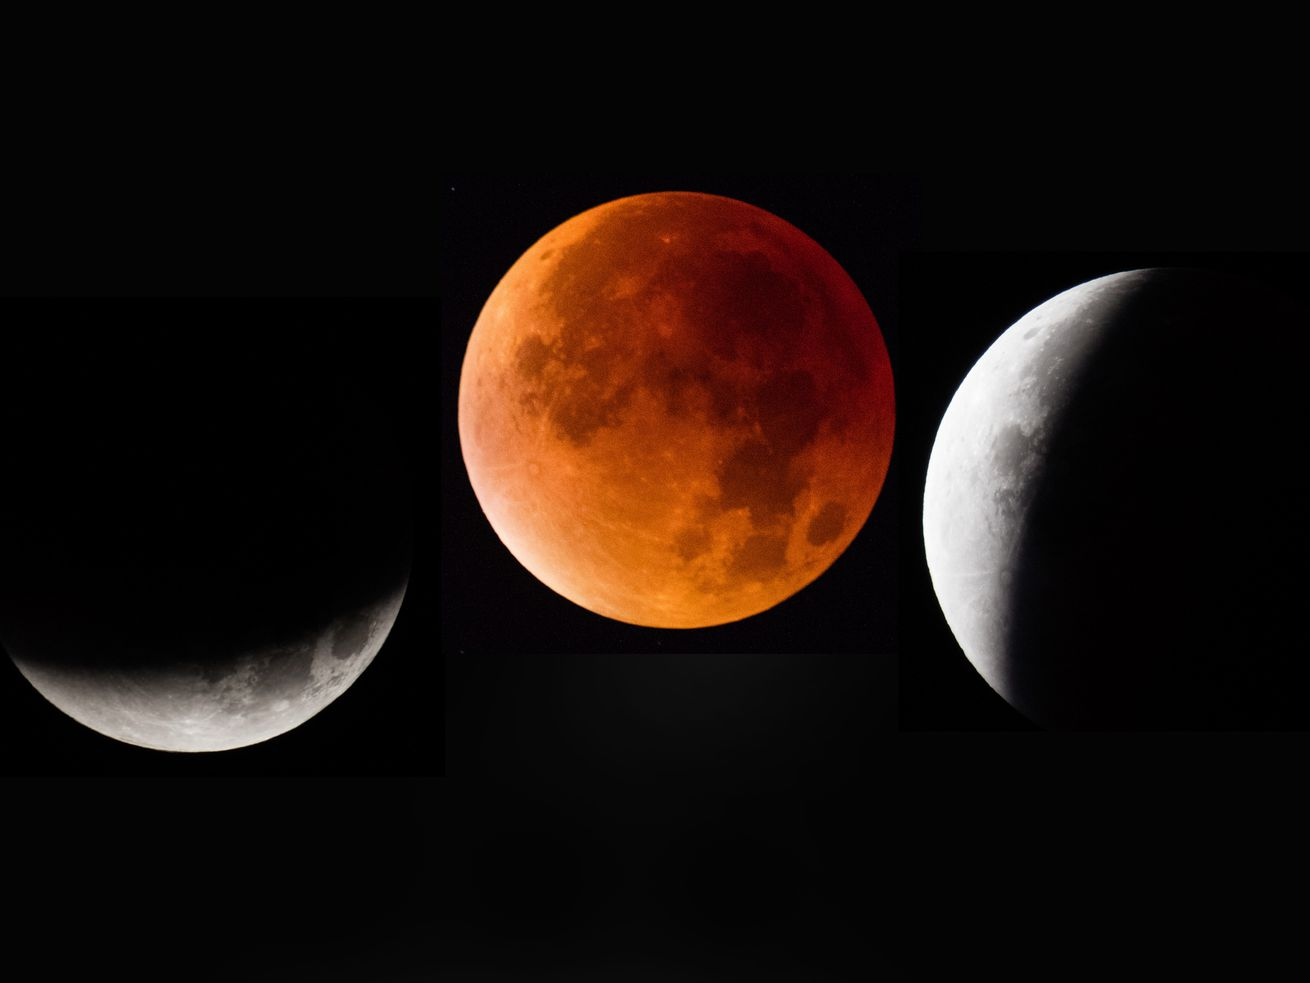 In this composite image, the moon is seen as it enters and leaves a lunar eclipse on September 28, 2015, in Glastonbury, England.